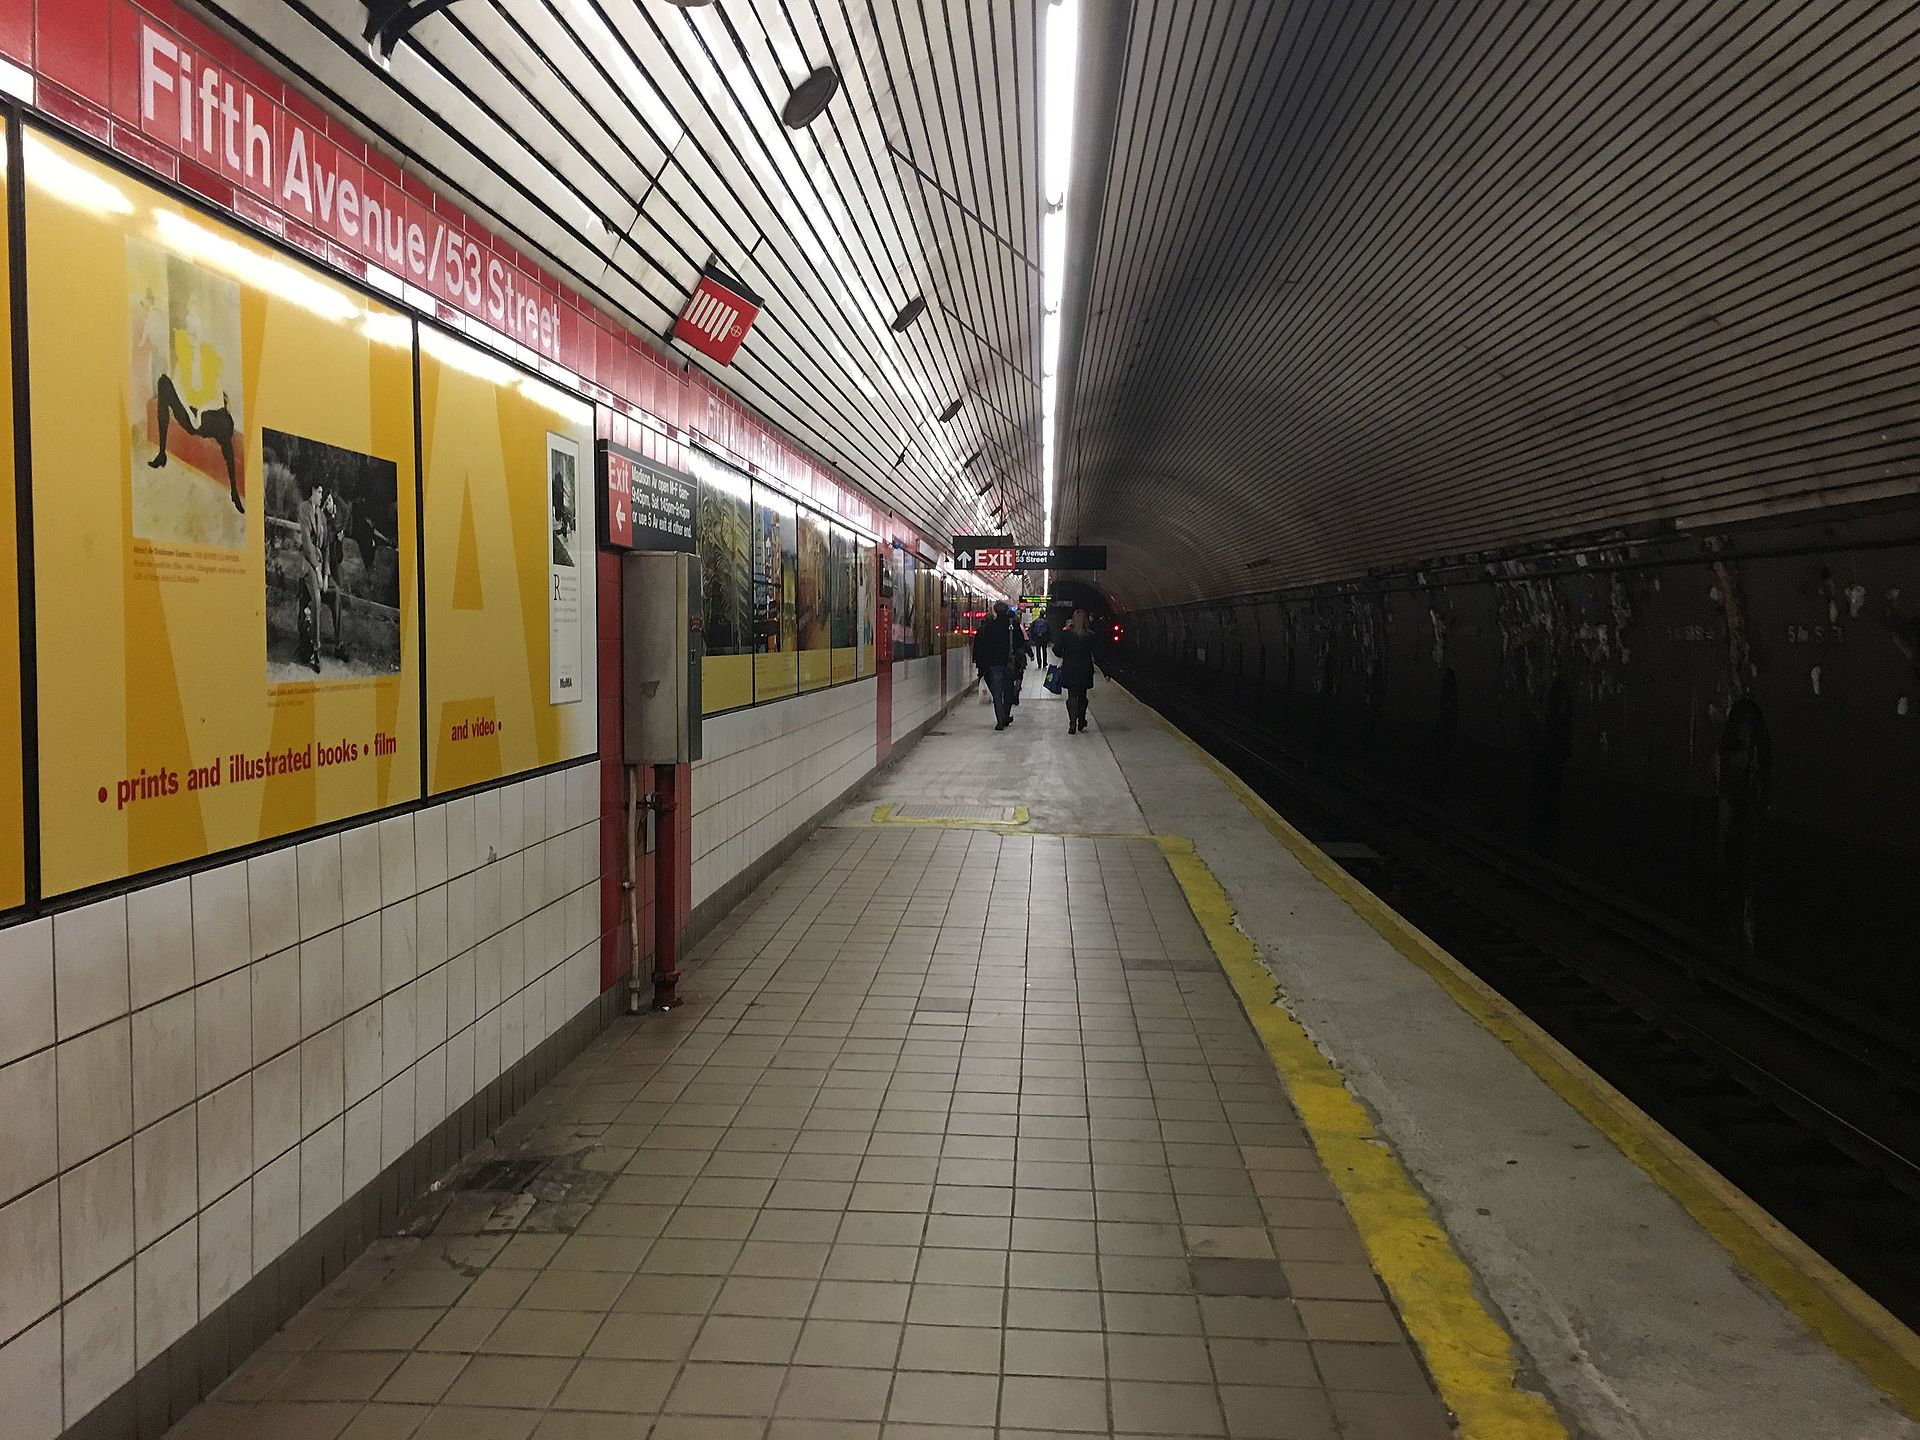 Fifth Avenue 53rd Street Ind Queens Boulevard Line